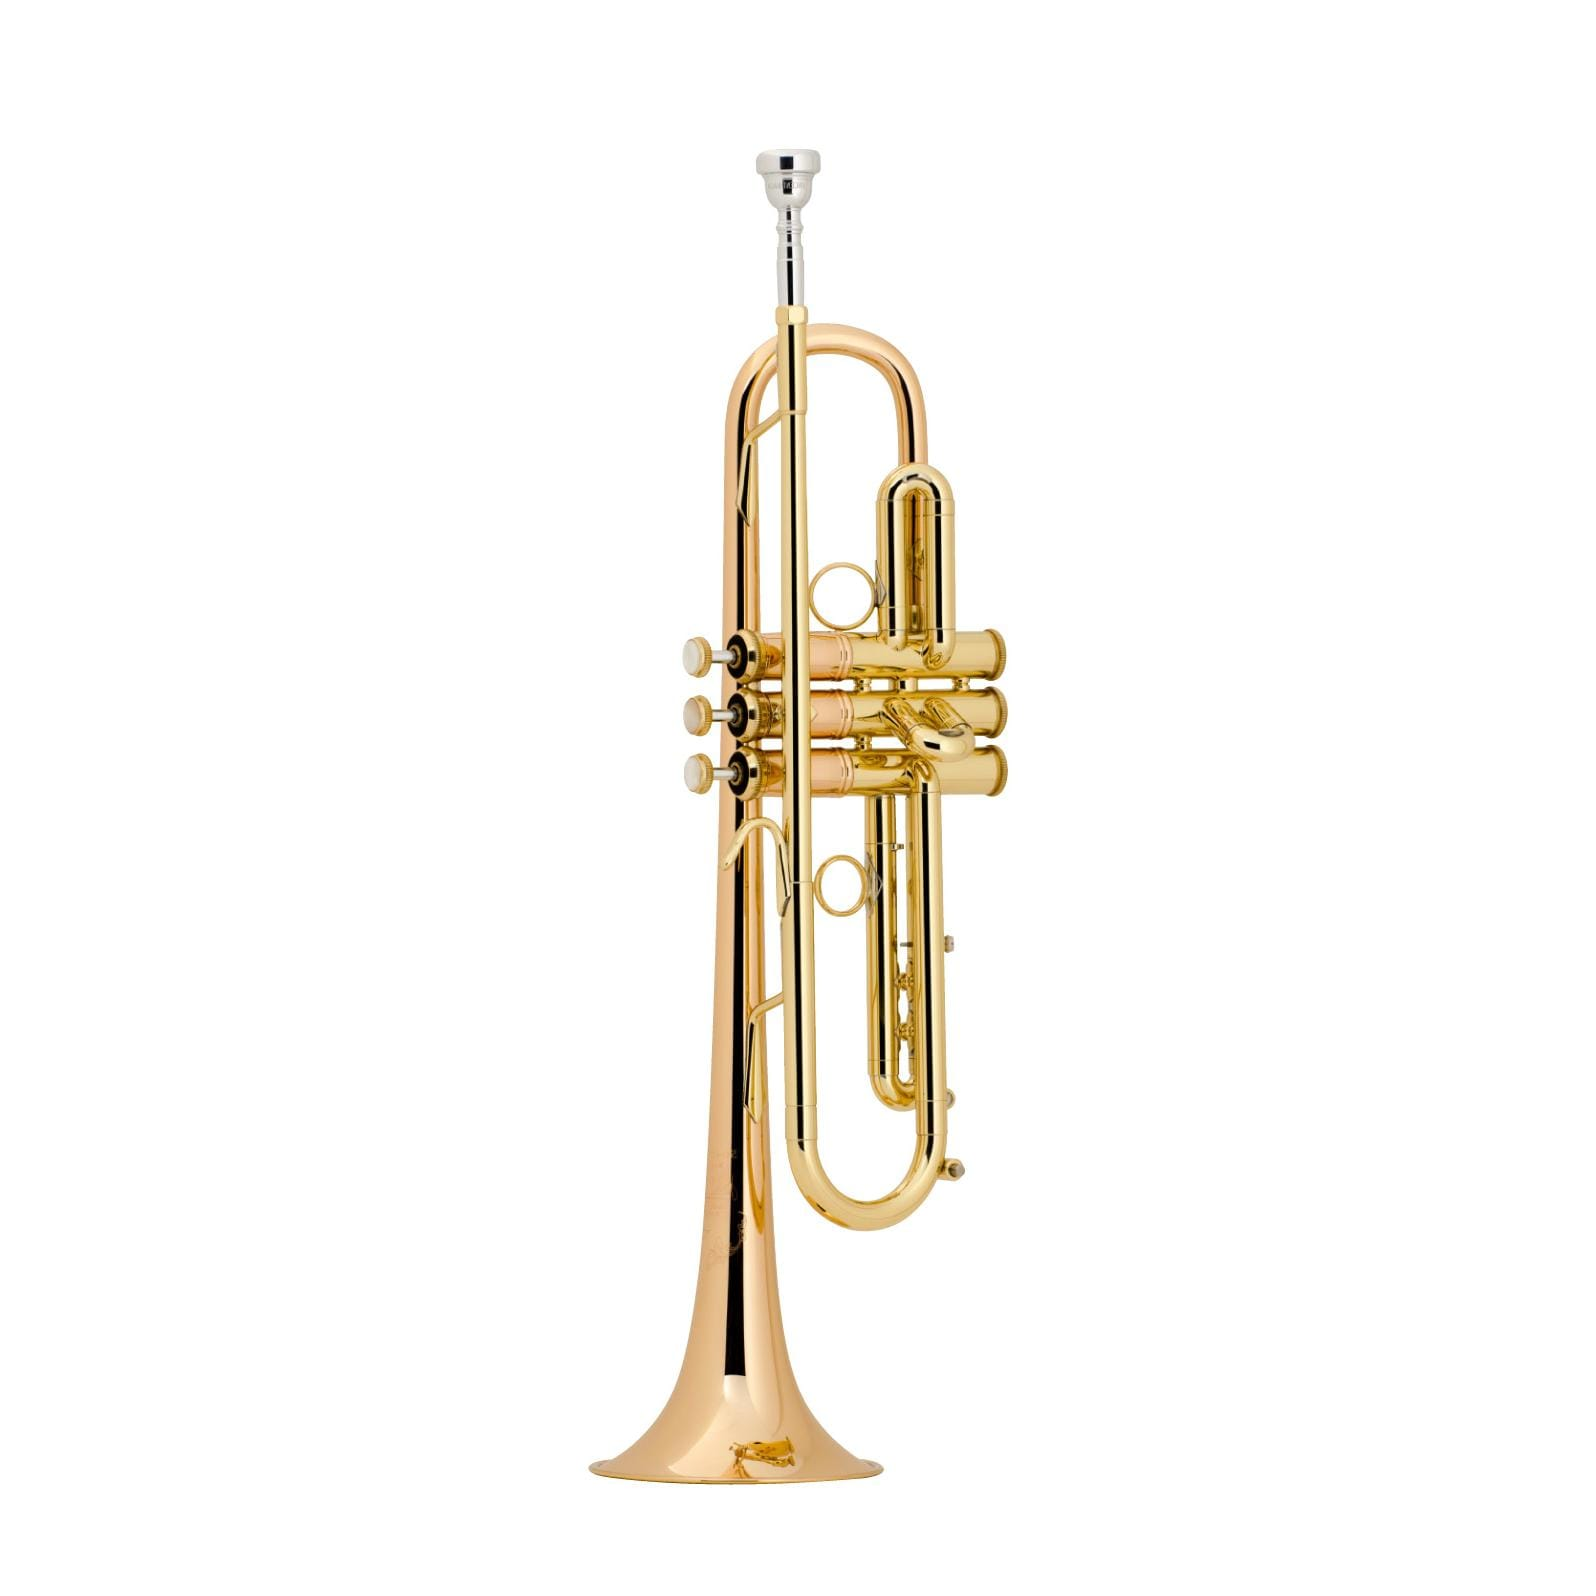 Buy Conn Selmer Brass Instruments Bach Stradivarius